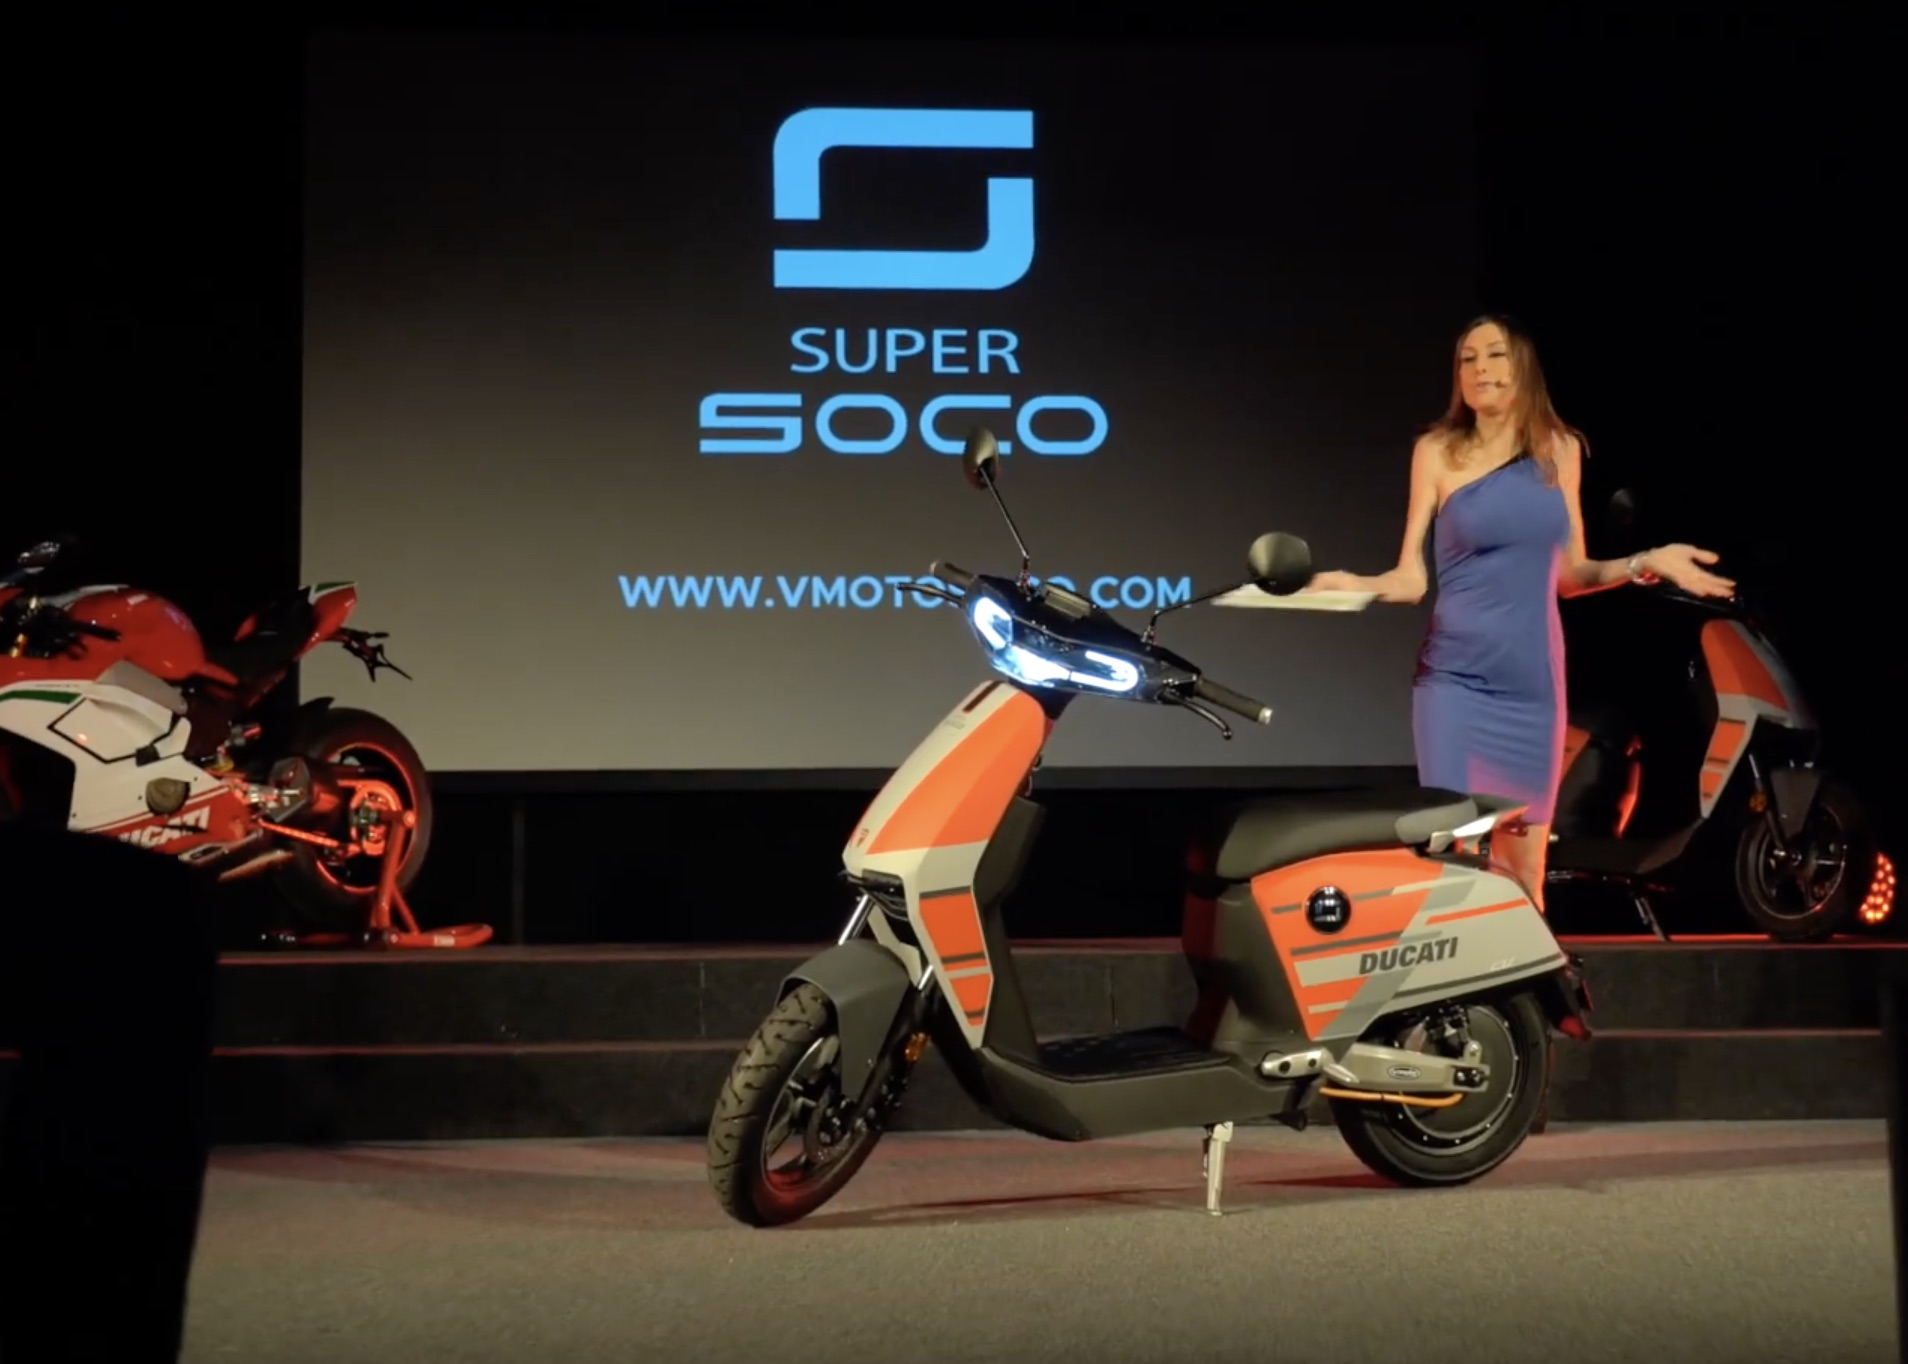 Ducati super soco CUx electric scooter